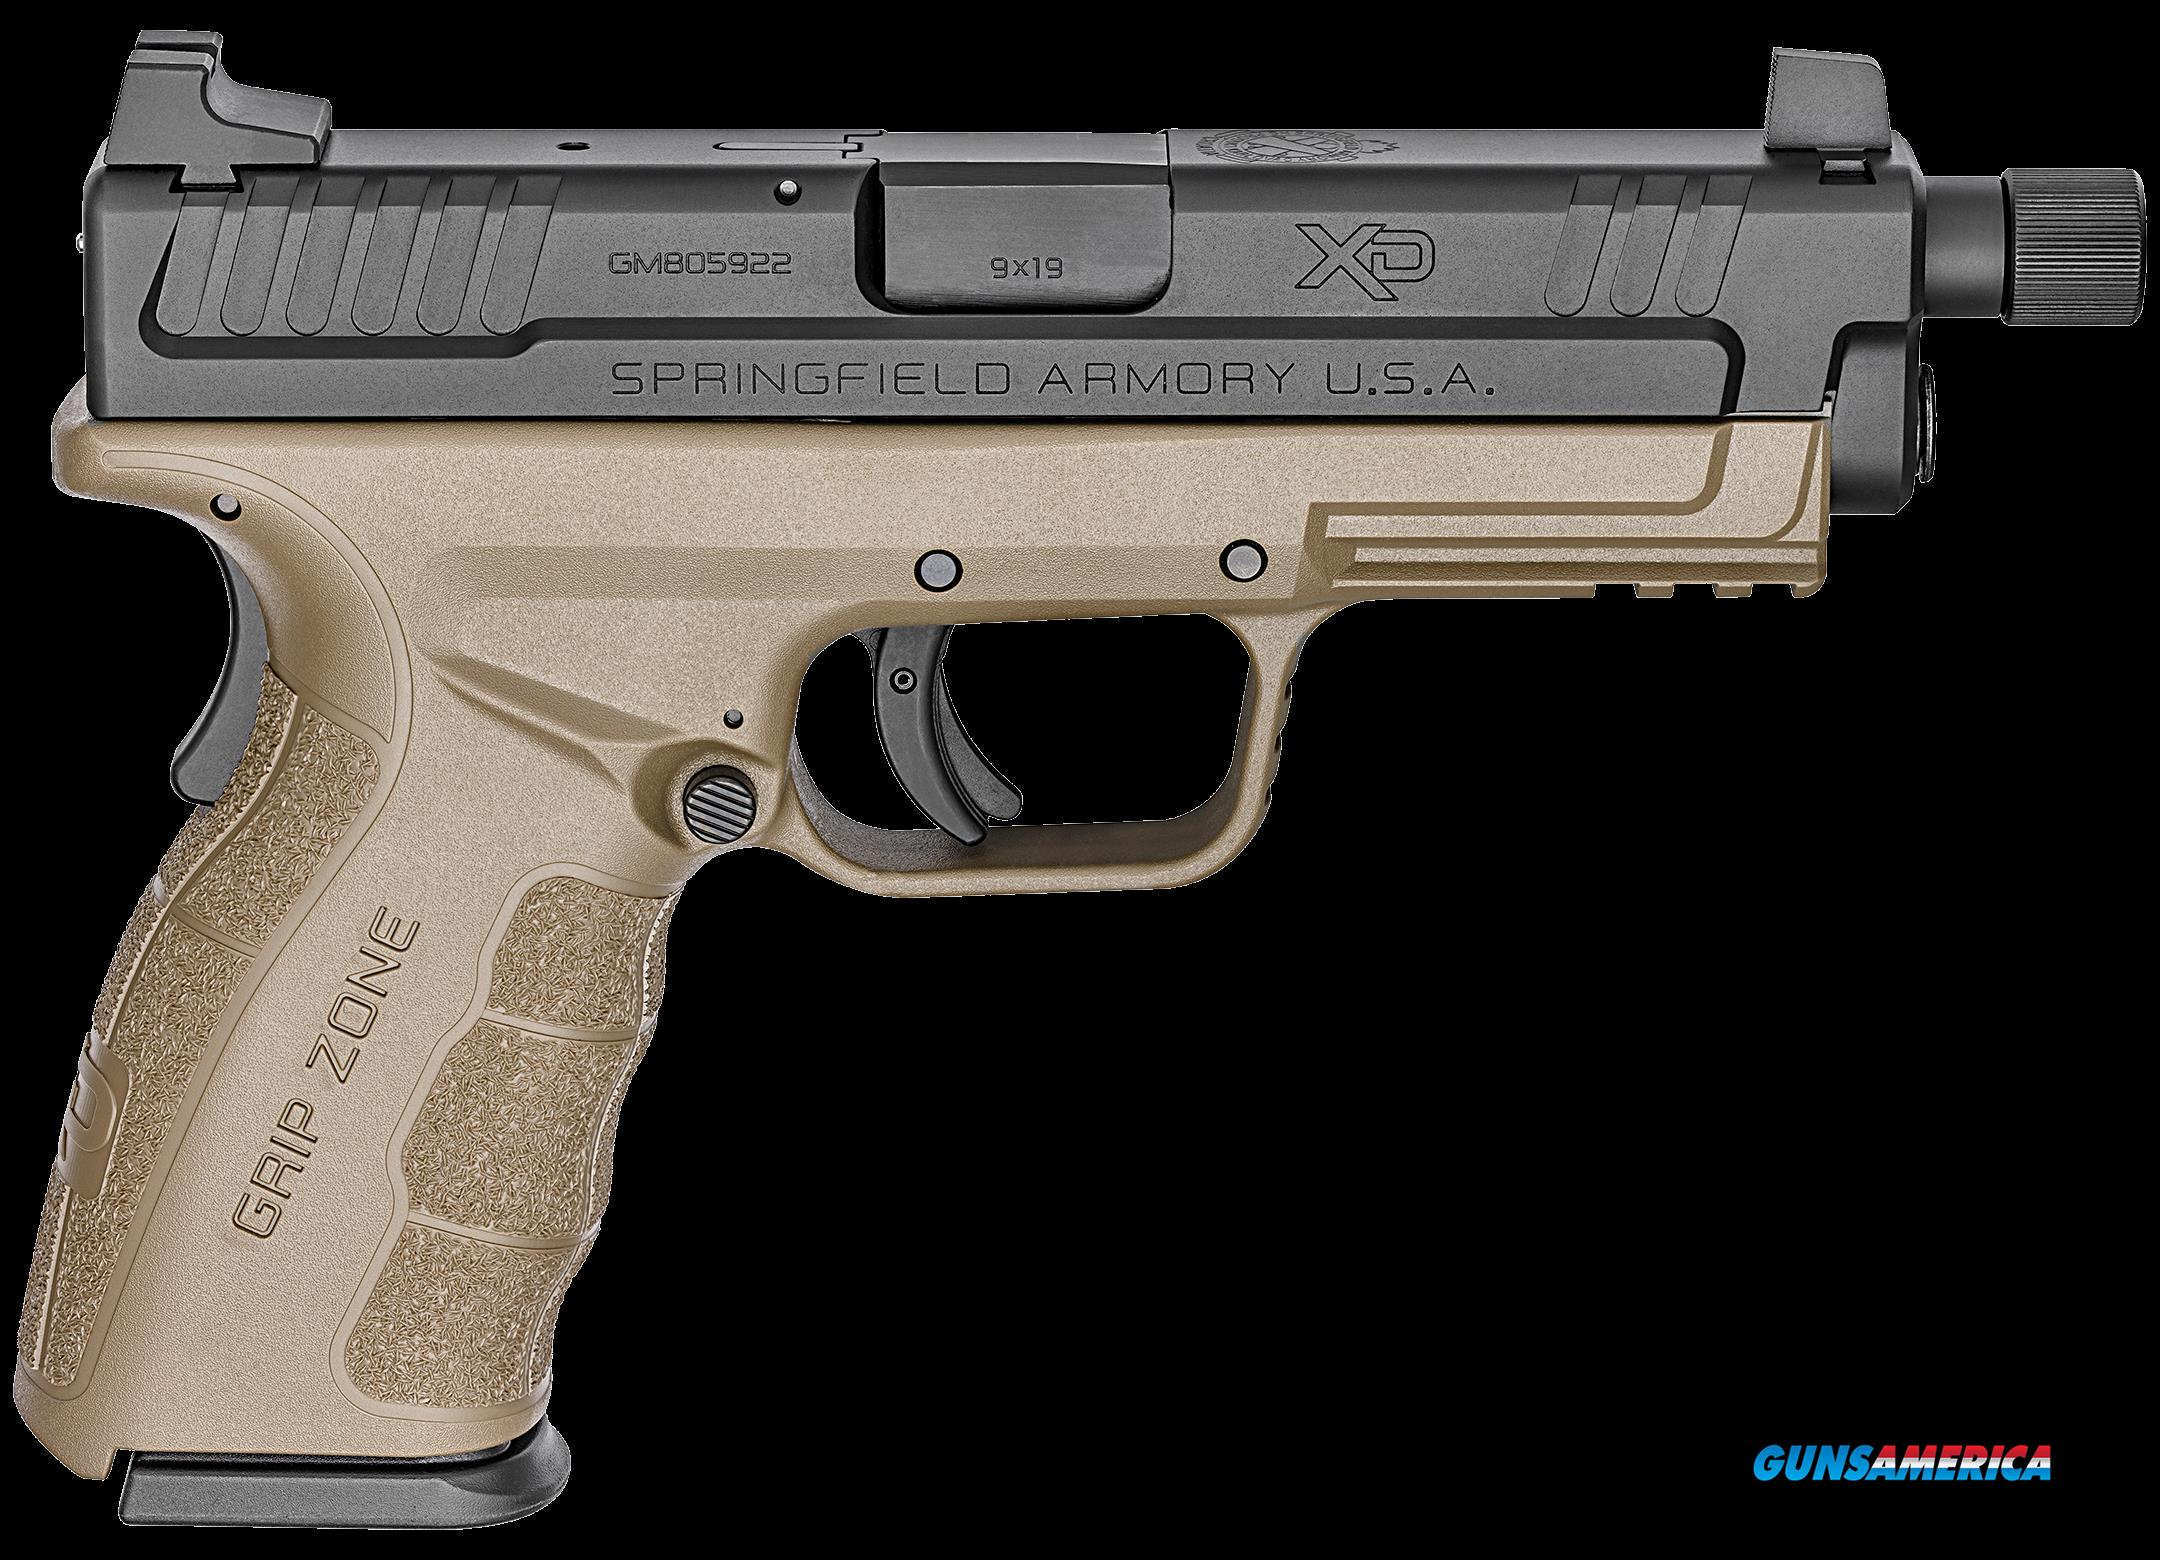 "Springfield Armory XDGT9101FDEH XD Mod.2 Service Double 9mm 4.8"" TB 16+1 Flat Dark Earth Polymer  Guns > Pistols > Springfield Armory Pistols > XD-Mod.2"